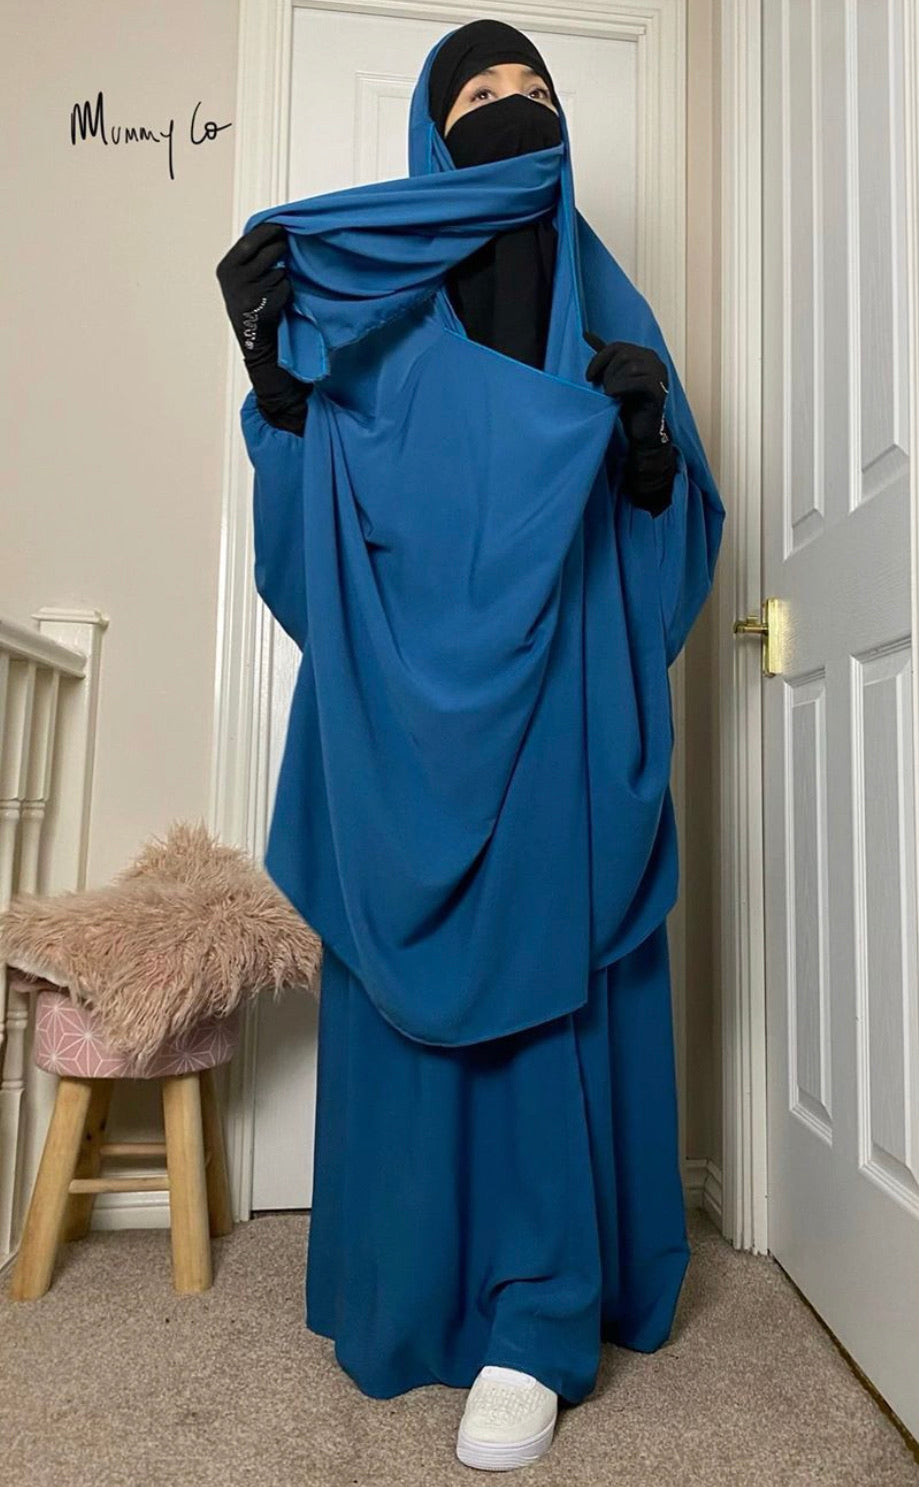 JILBAB 2 PIECES SET MUMMY & MATERNITY Blue